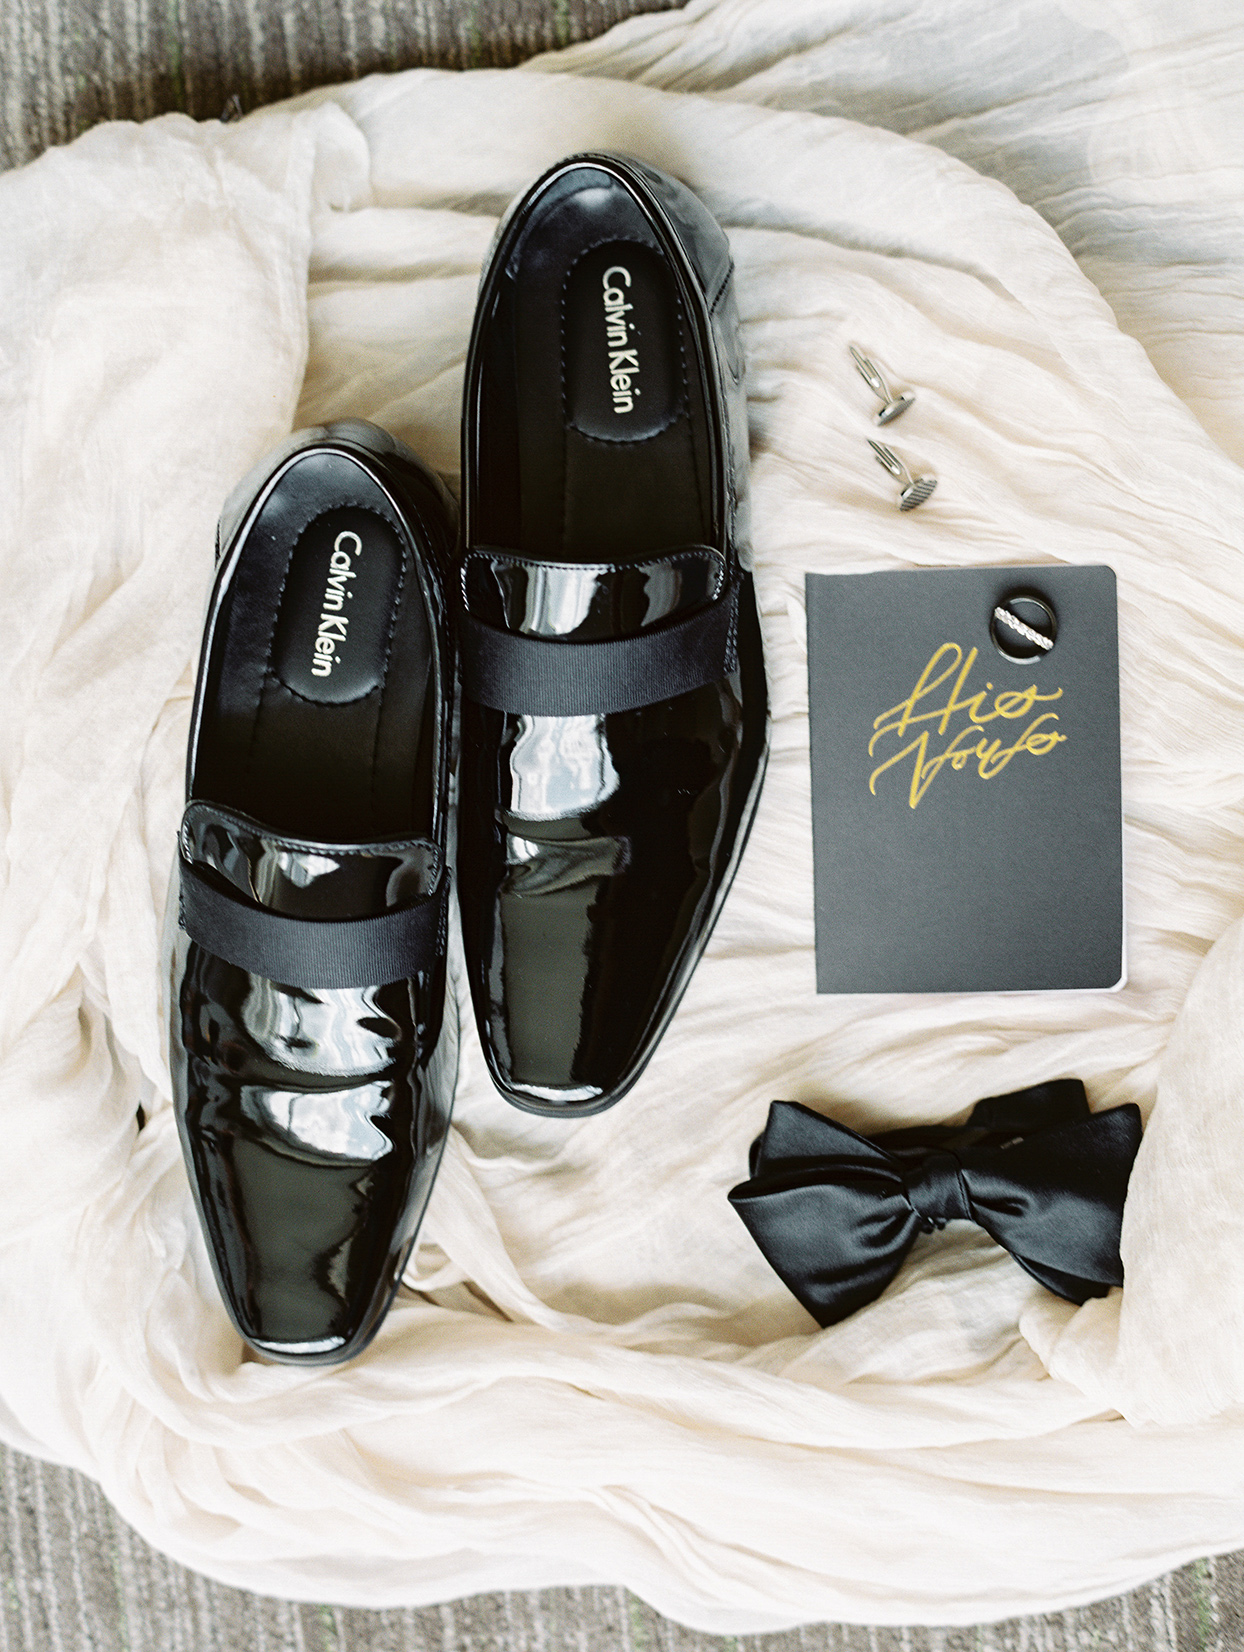 amelia justing wedding groom's shoes, bow tie and vow book